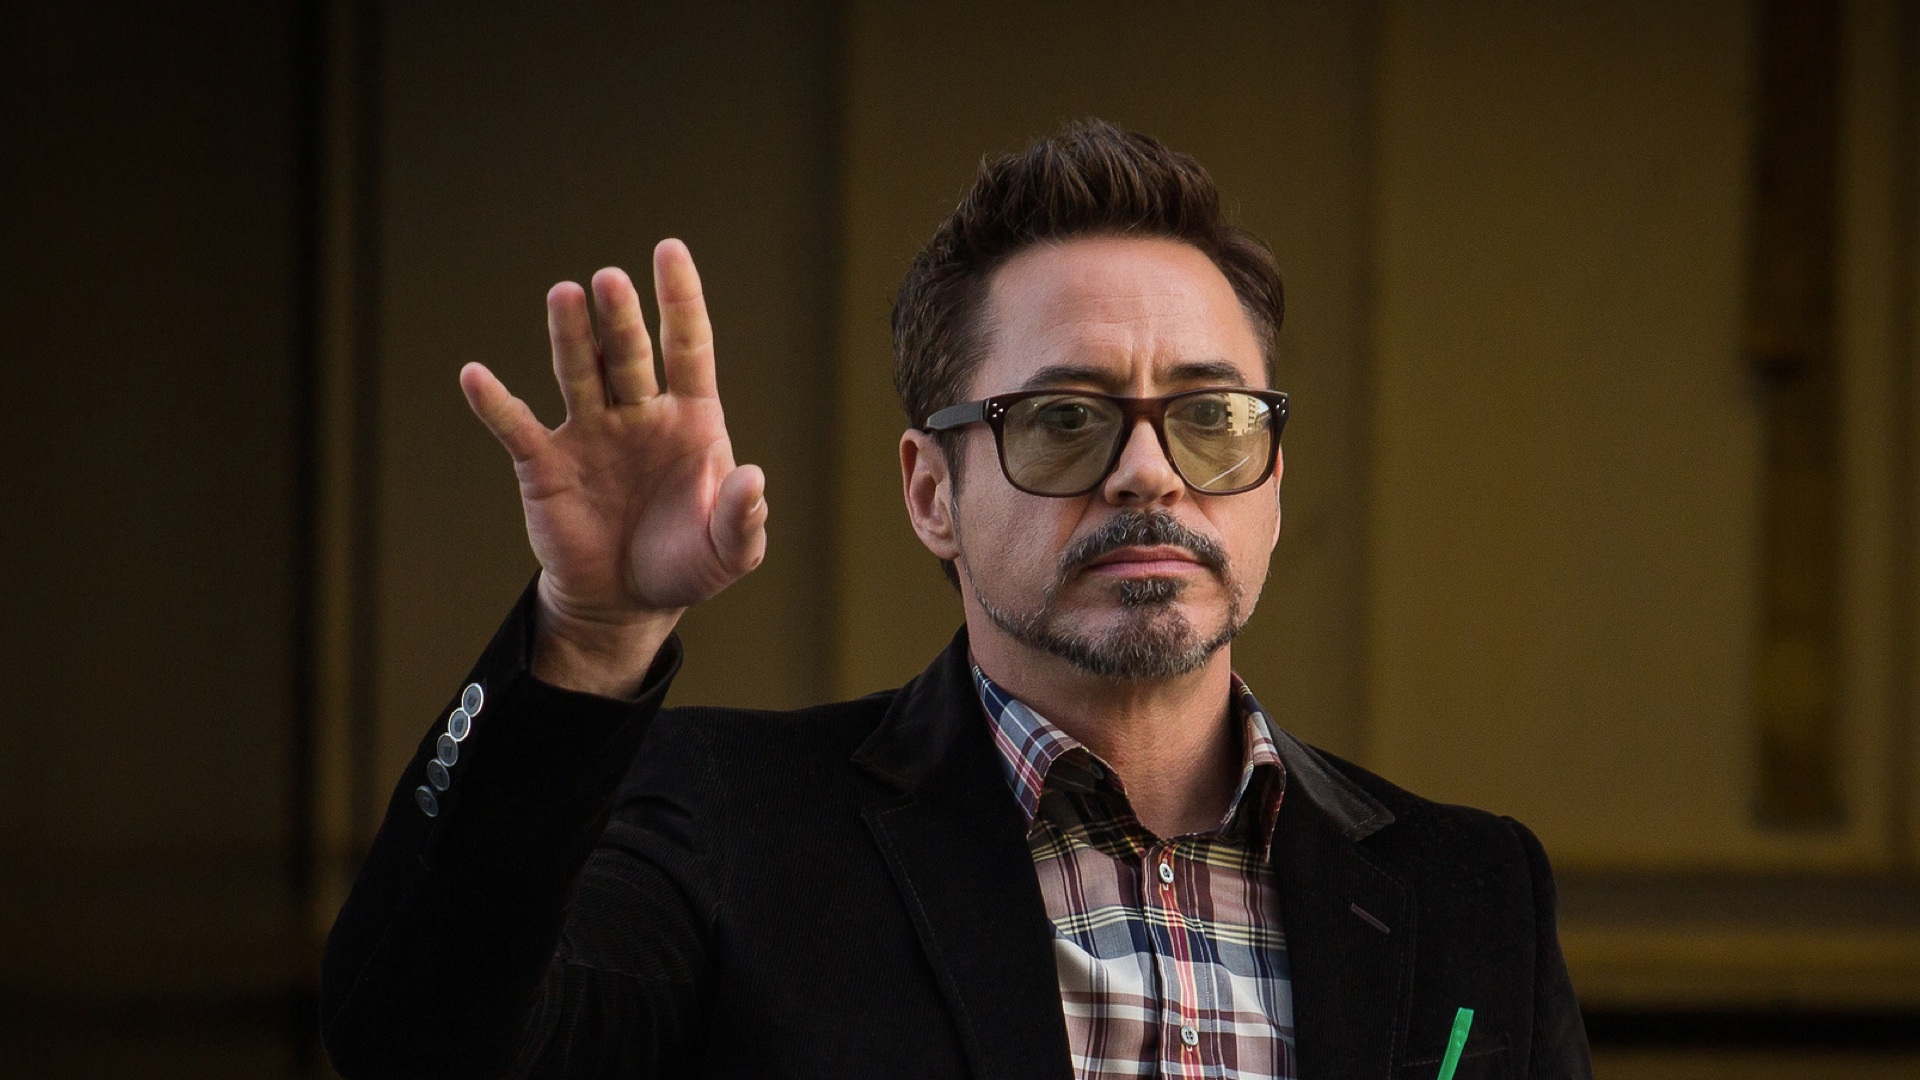 Robert Downey Jr The Real Life Tony Stark